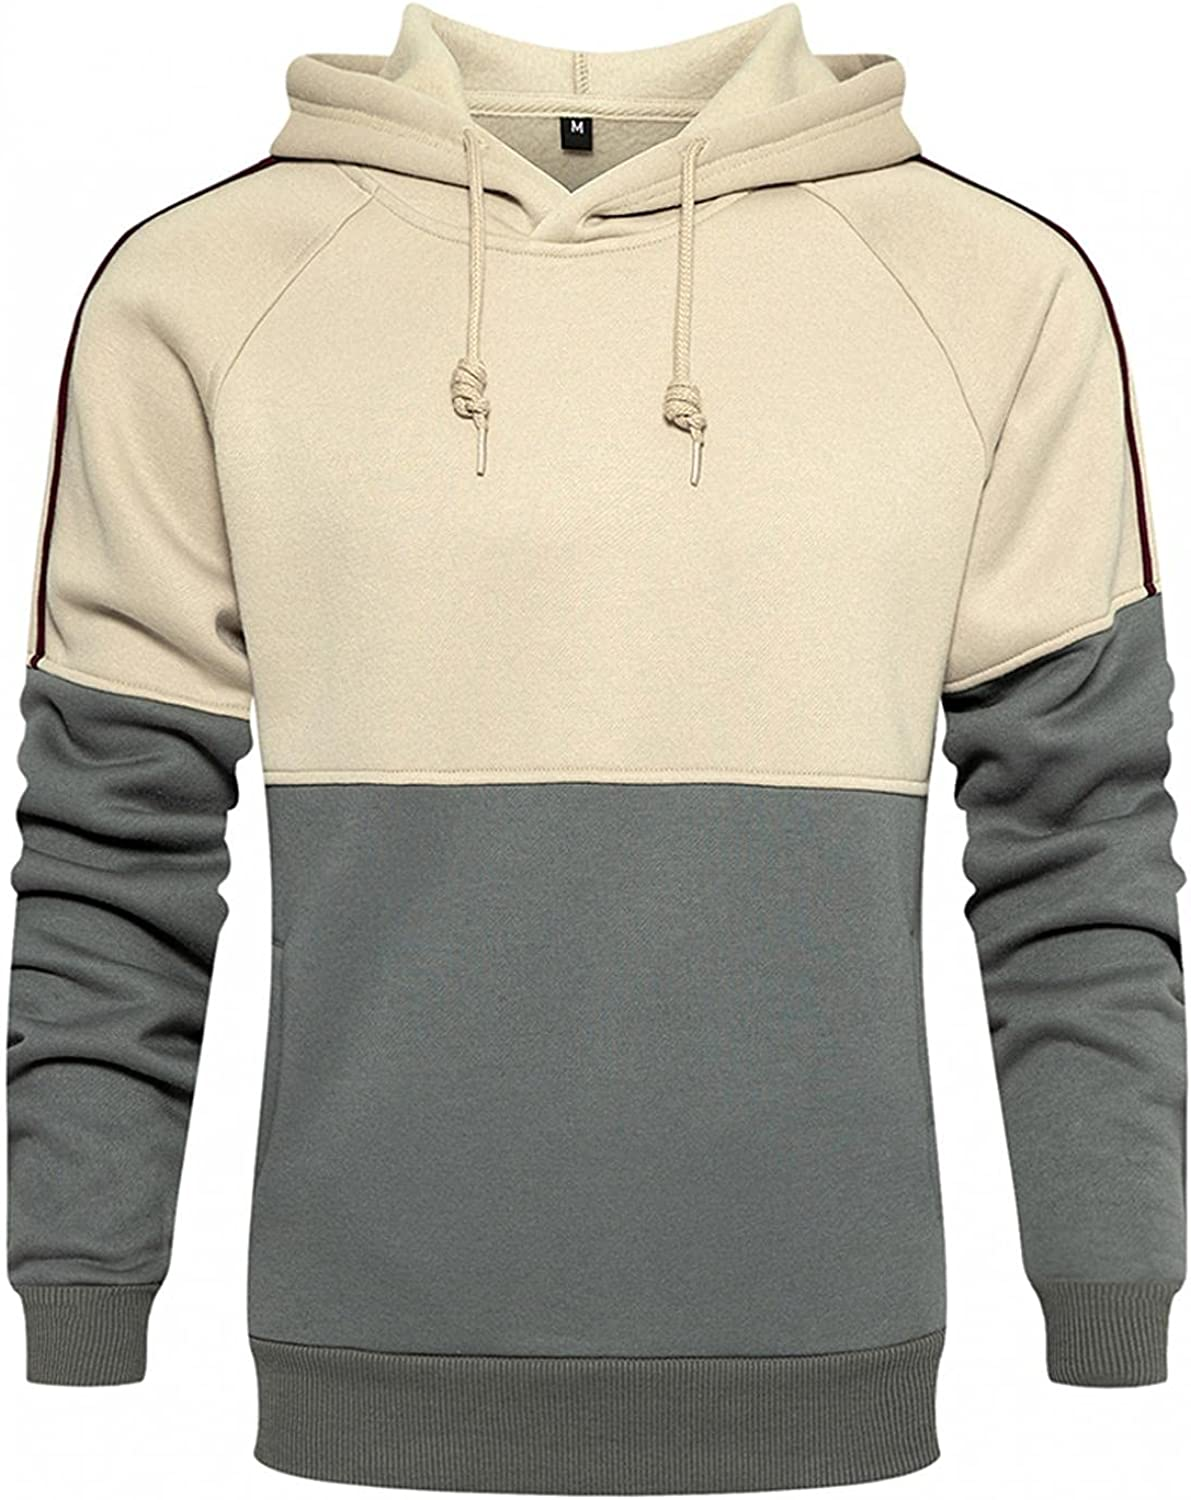 Qsctys Men's Solid Patchwork Pullover So Crewneck gift free Hoodies Sports